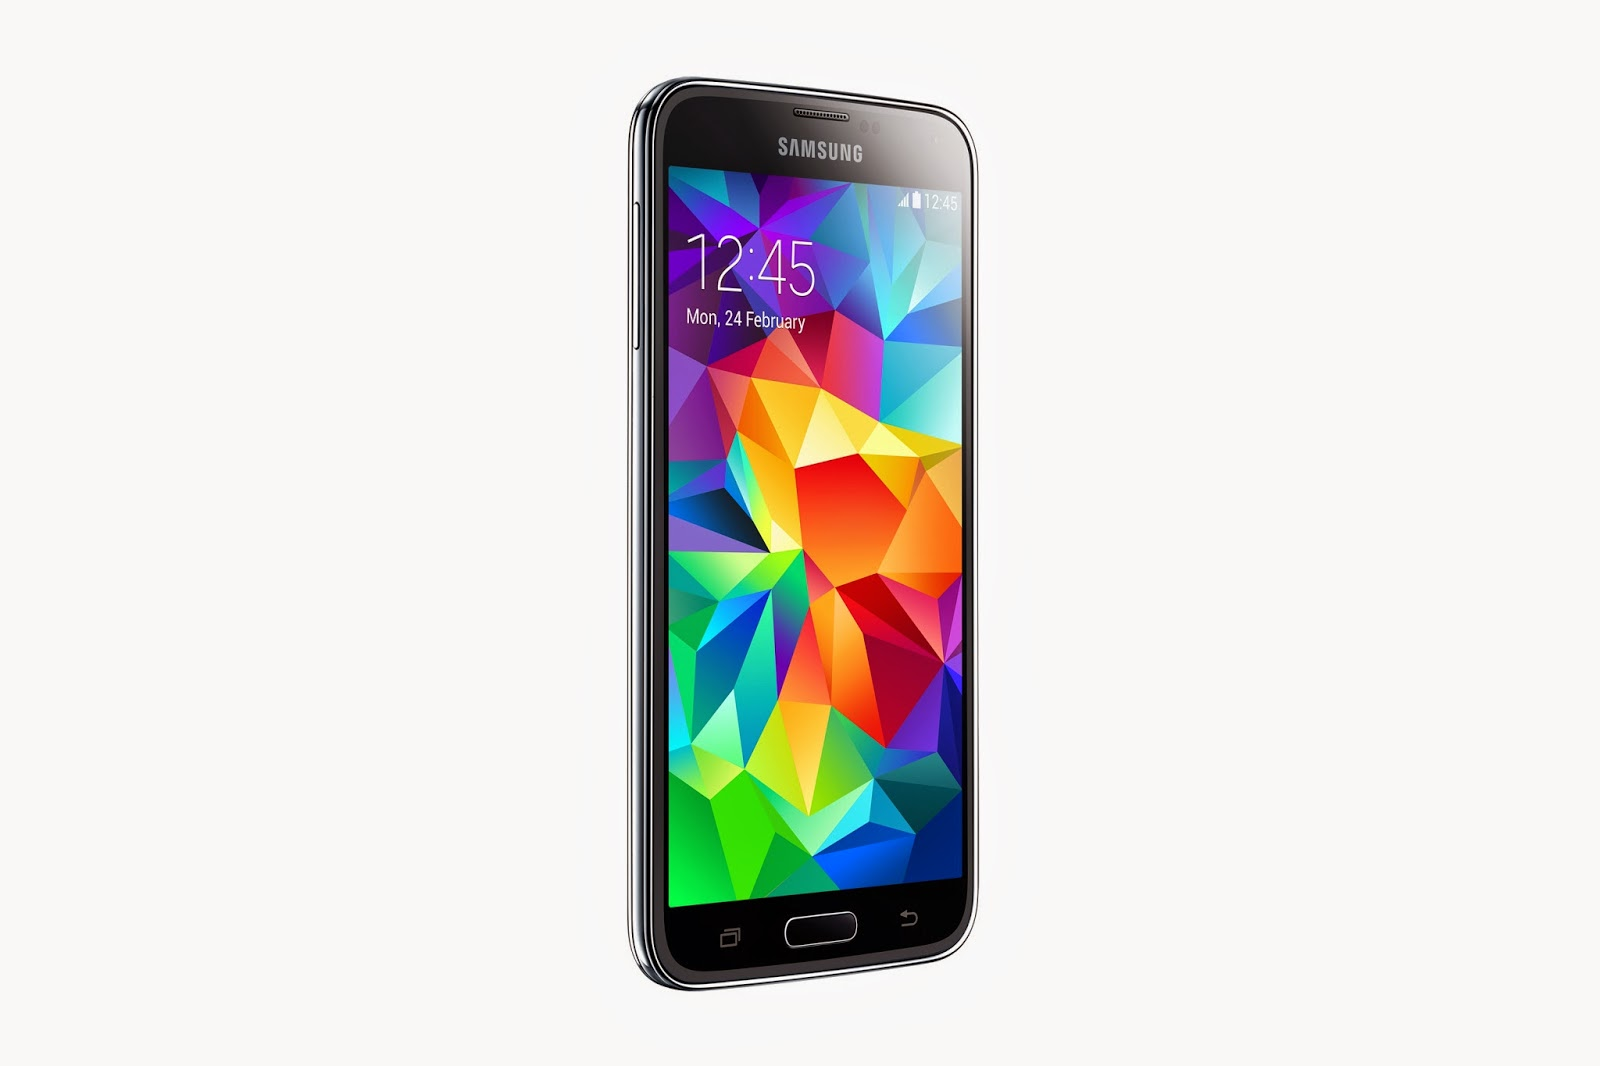 new samsung smartphone reviews galaxy s5, galaxy s2, galaxy note